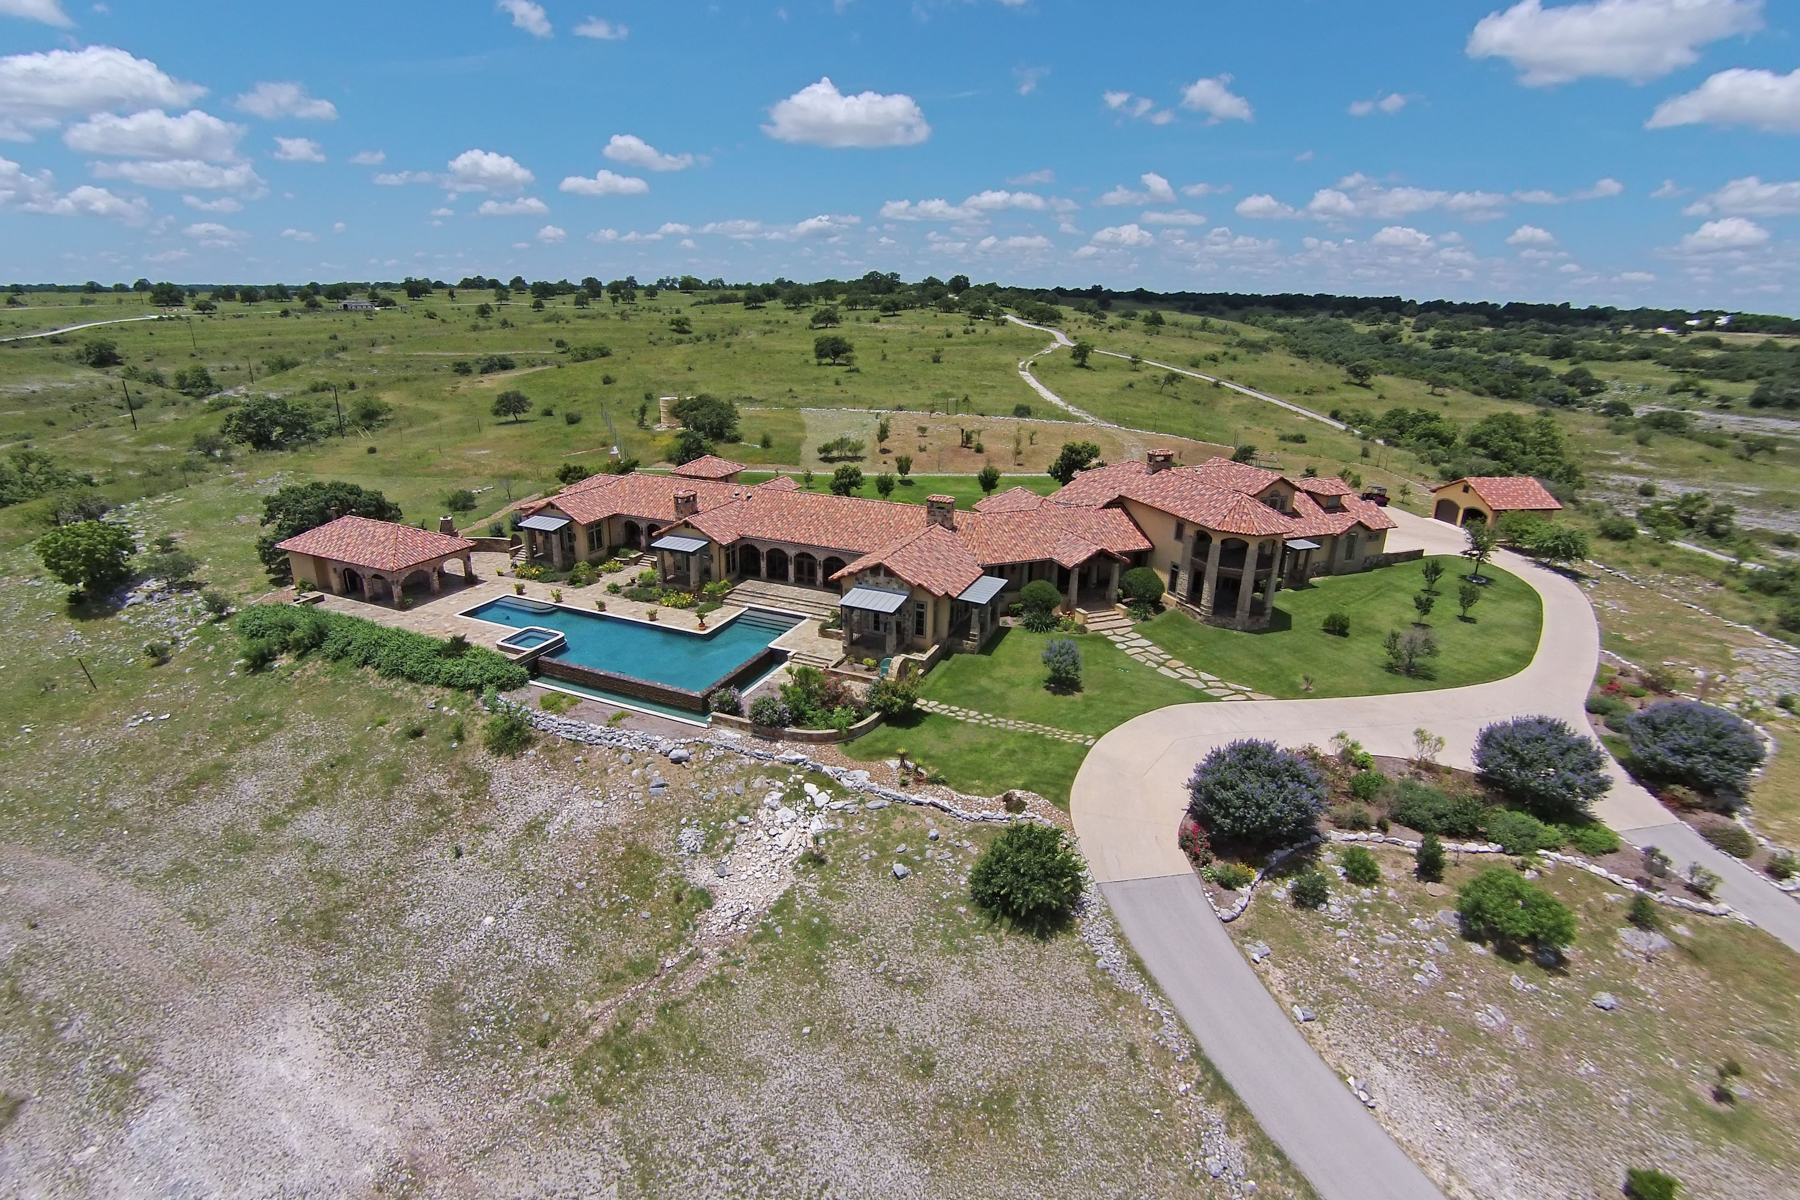 Single Family Home for Sale at Spectacular Property on Diamond E Ranch 6231 Ranger Creek Rd Boerne, Texas 78006 United States